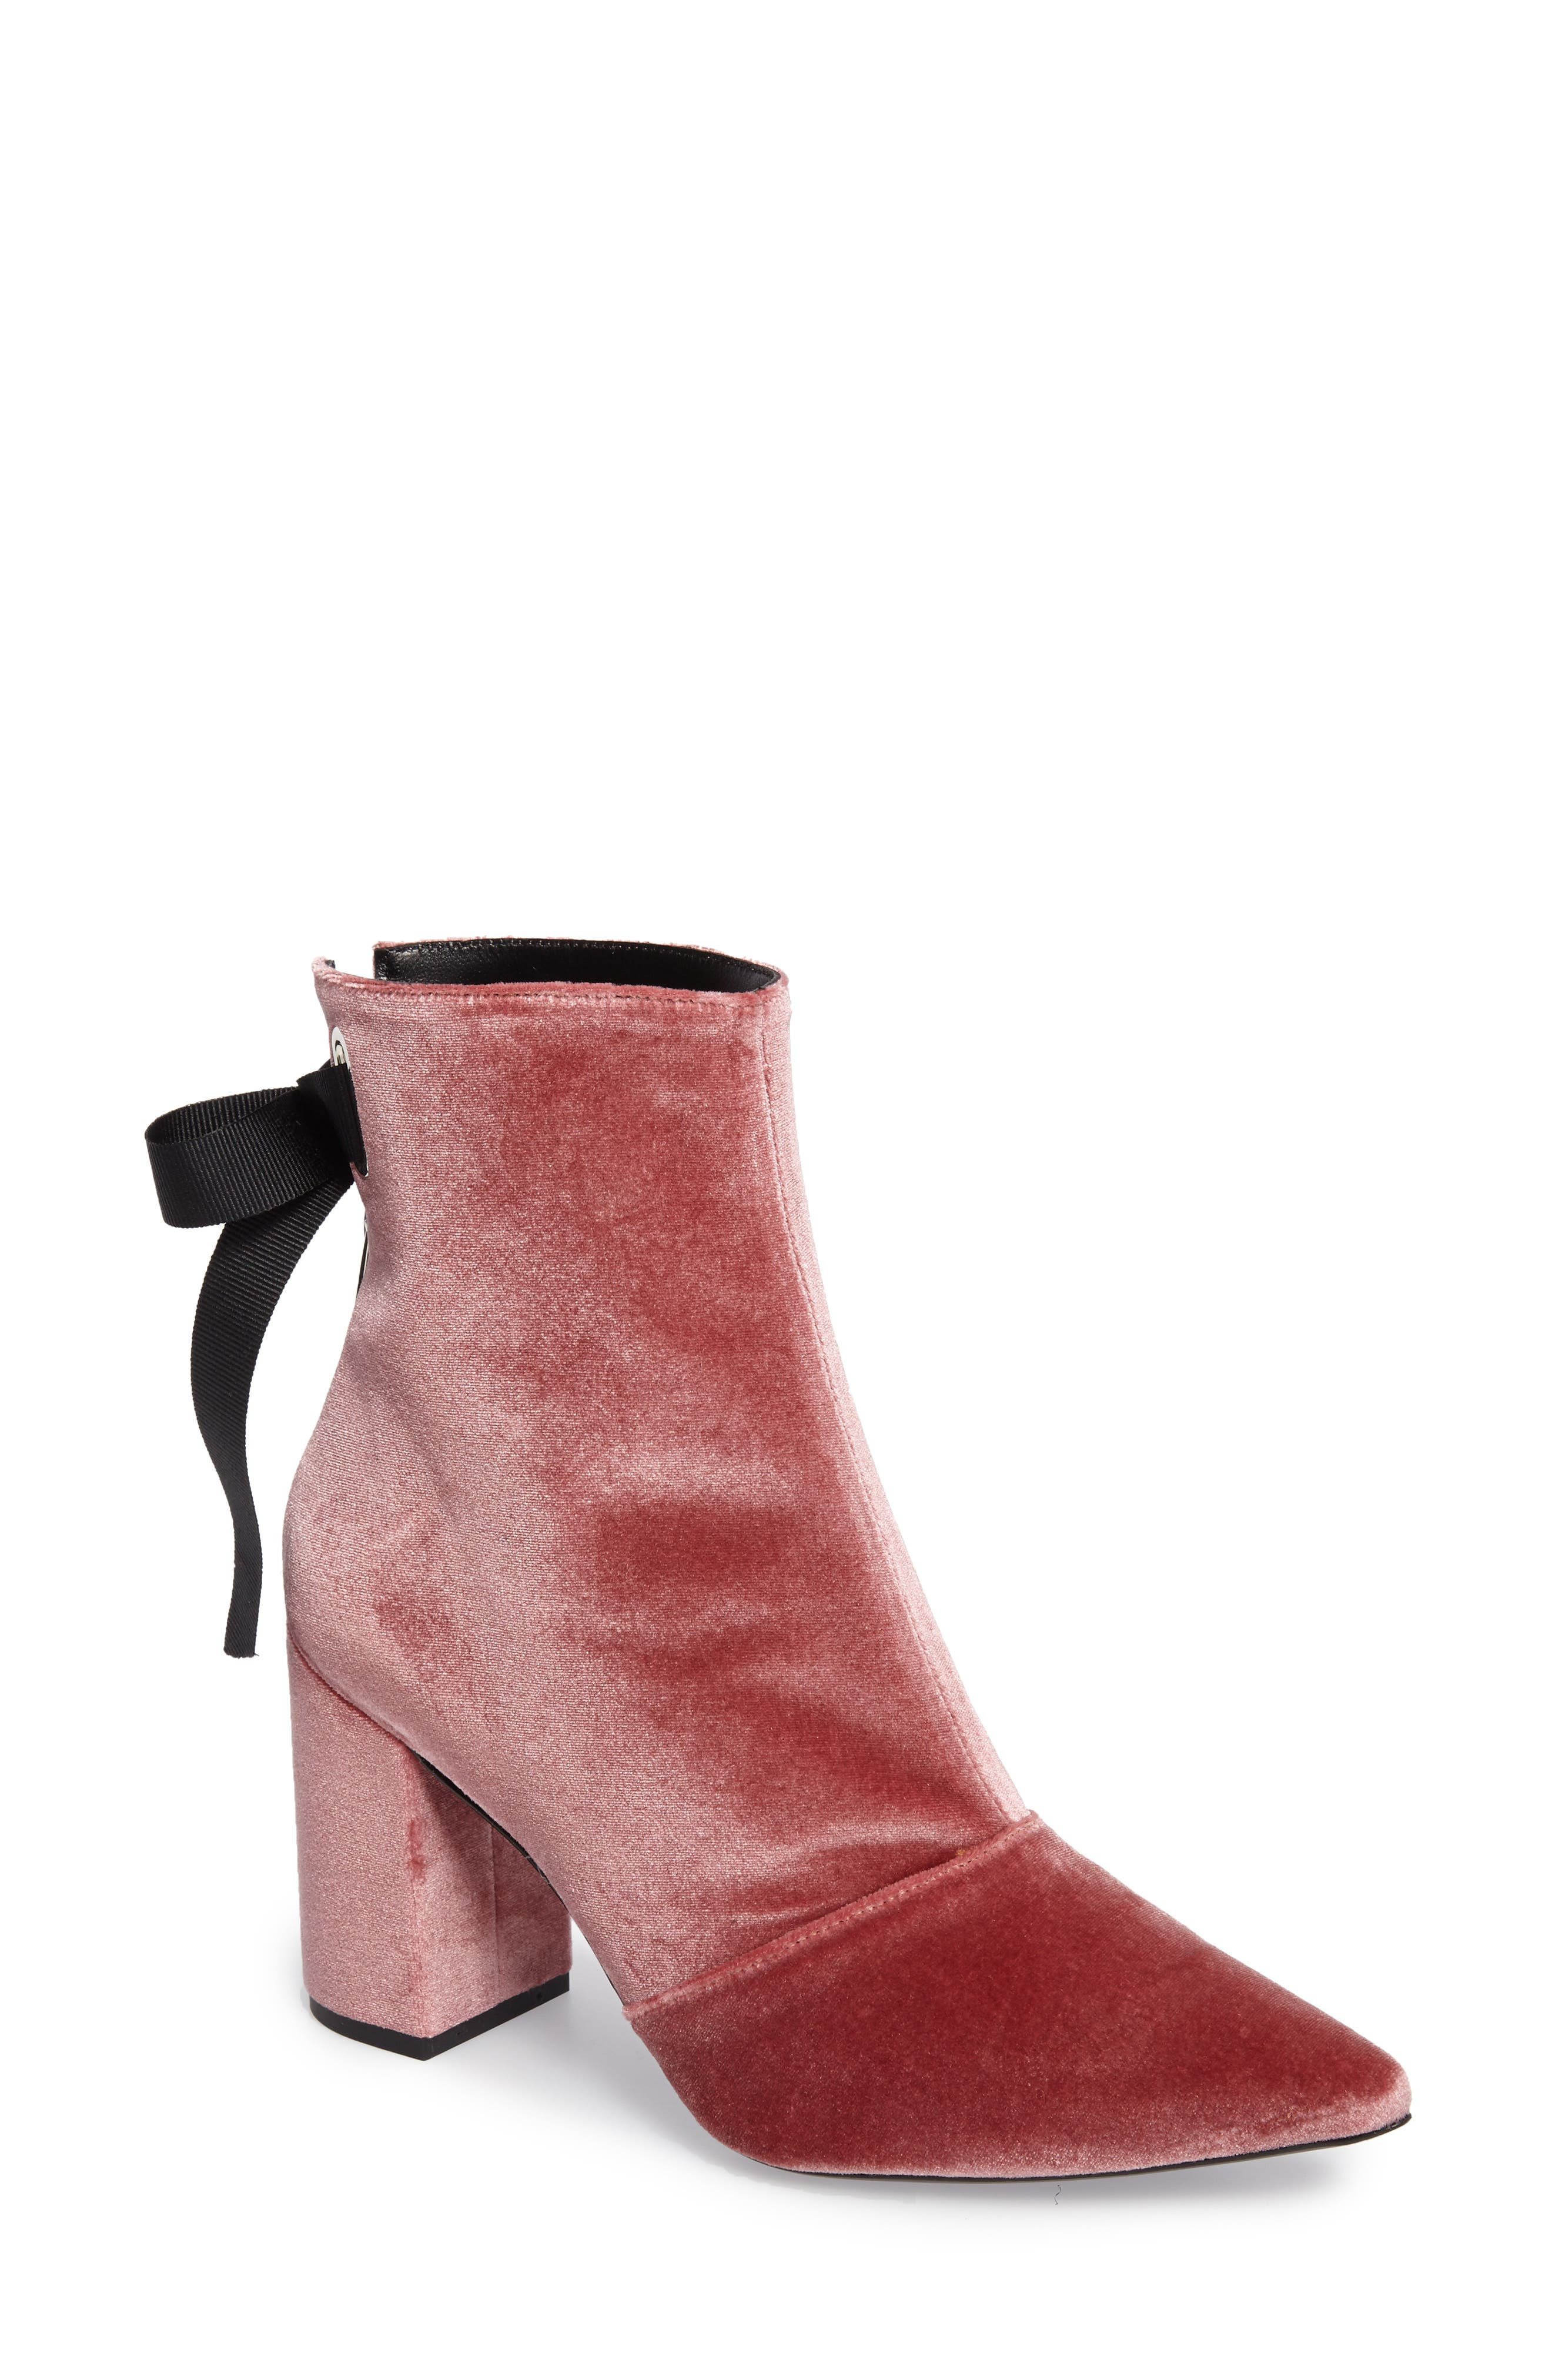 Main Image - Robert Clergerie x Self-Portrait Karlit Pointy Toe Bootie (Women)